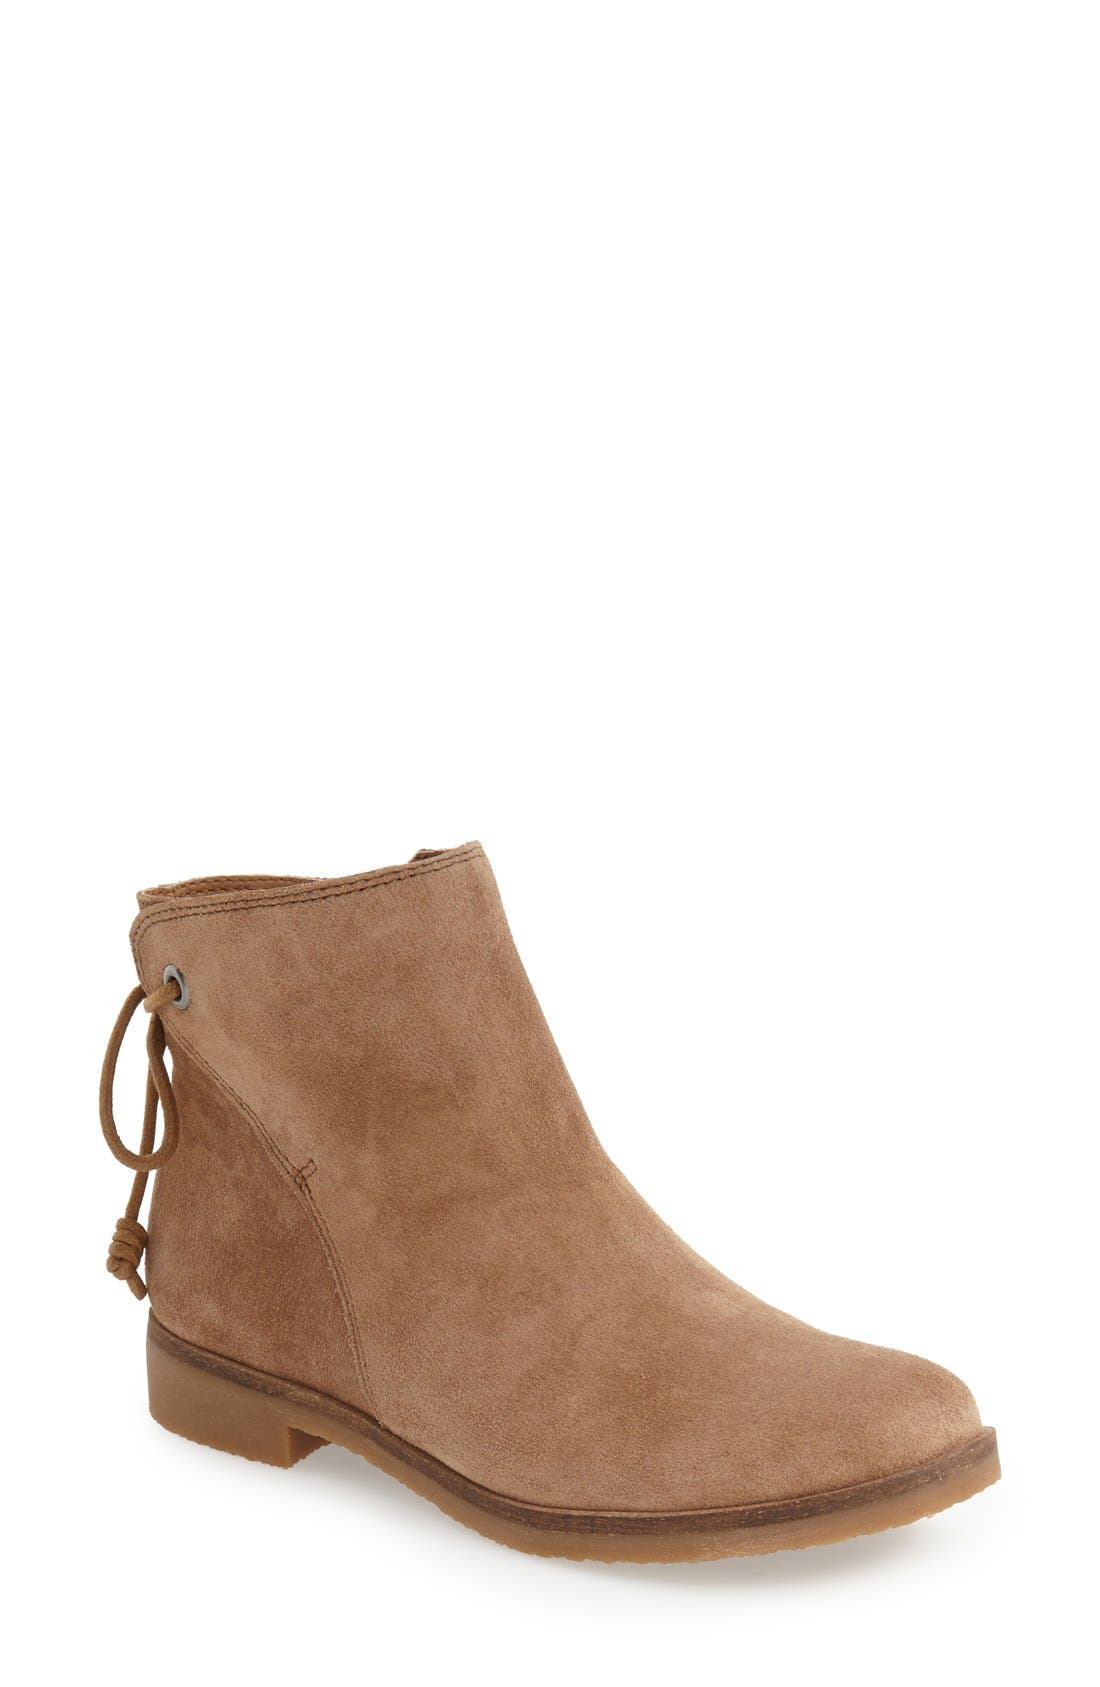 Alternate Image 1 Selected - Lucky Brand 'Gwenore' Bootie (Women)